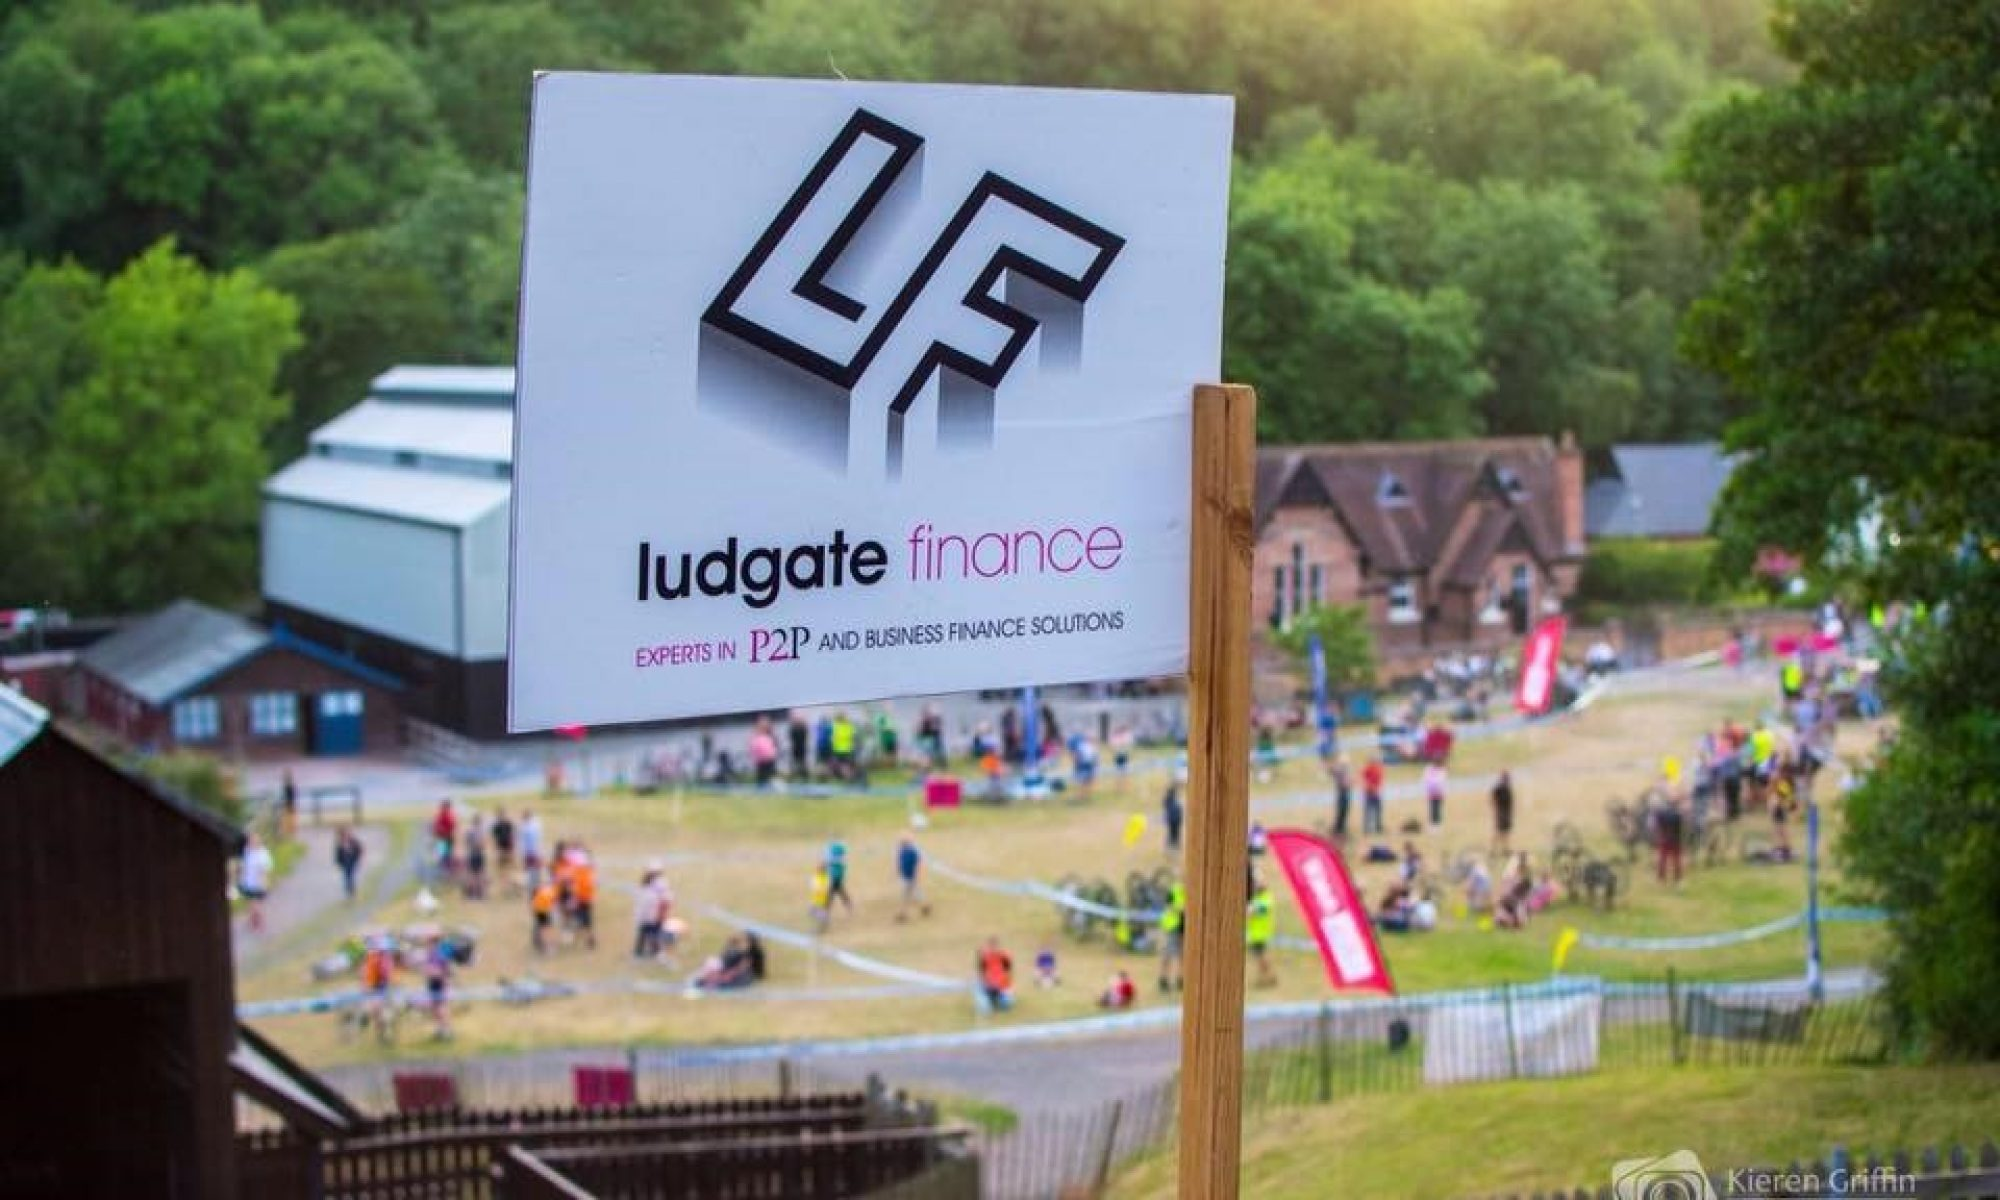 The Ludgate Finance Queen Victoria Cyclocross